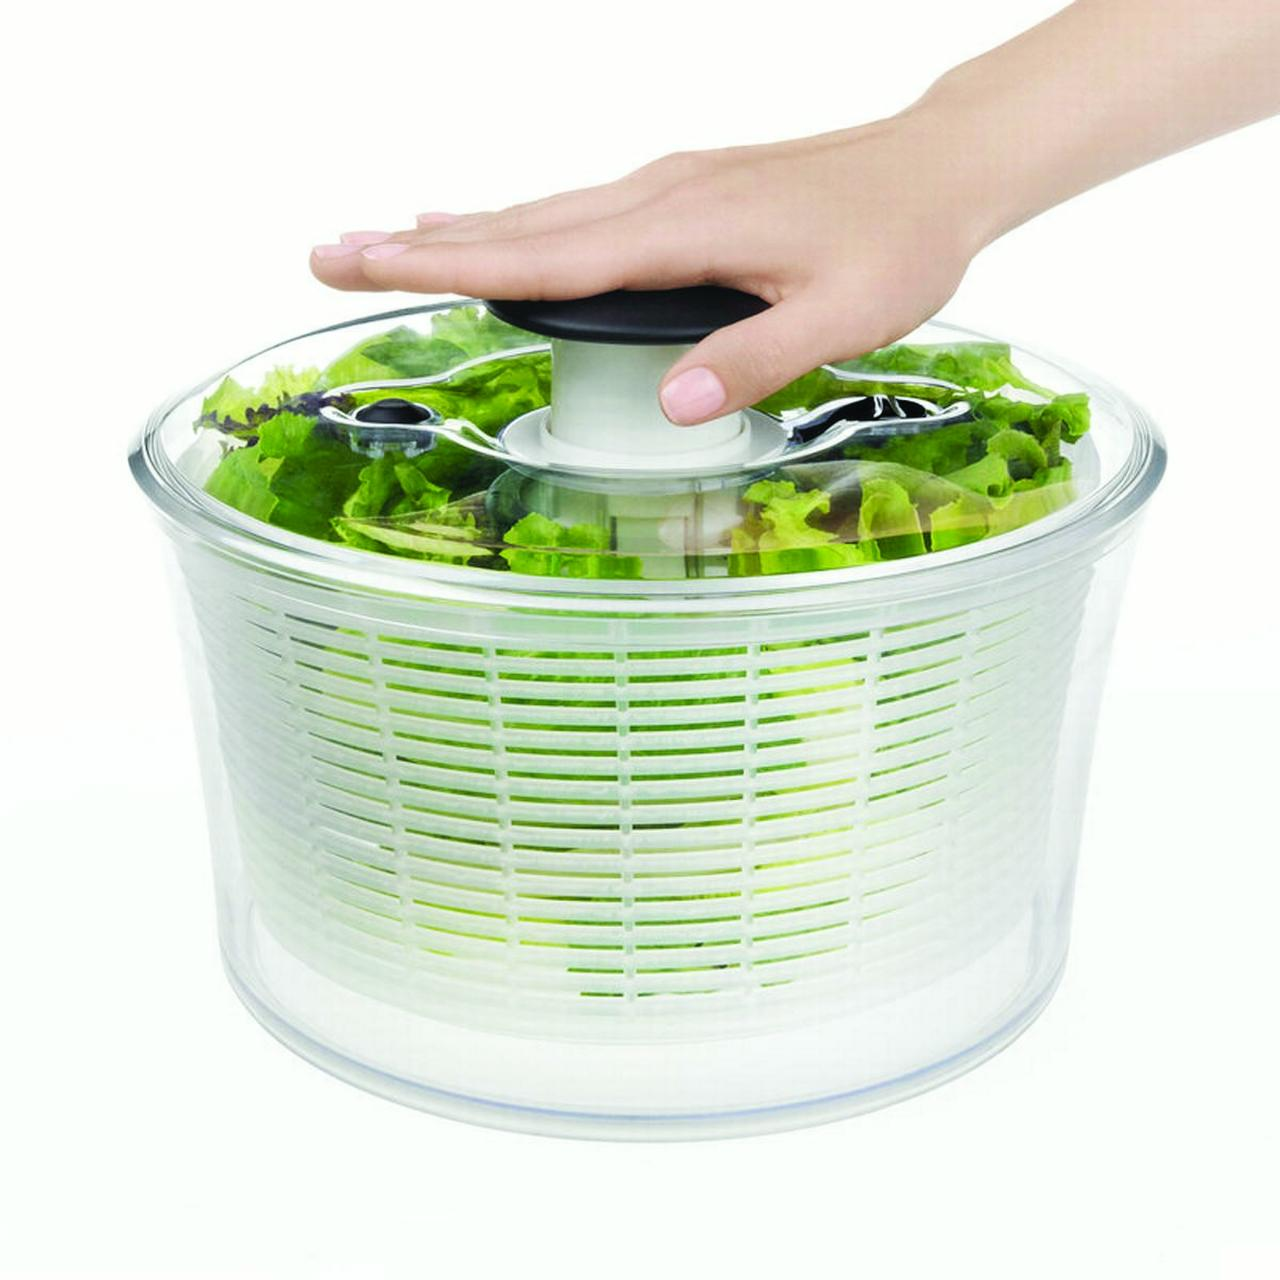 Good Grips 1045409 Salad/Herb Spinner, 8 in L x 8 in W x 7 in H